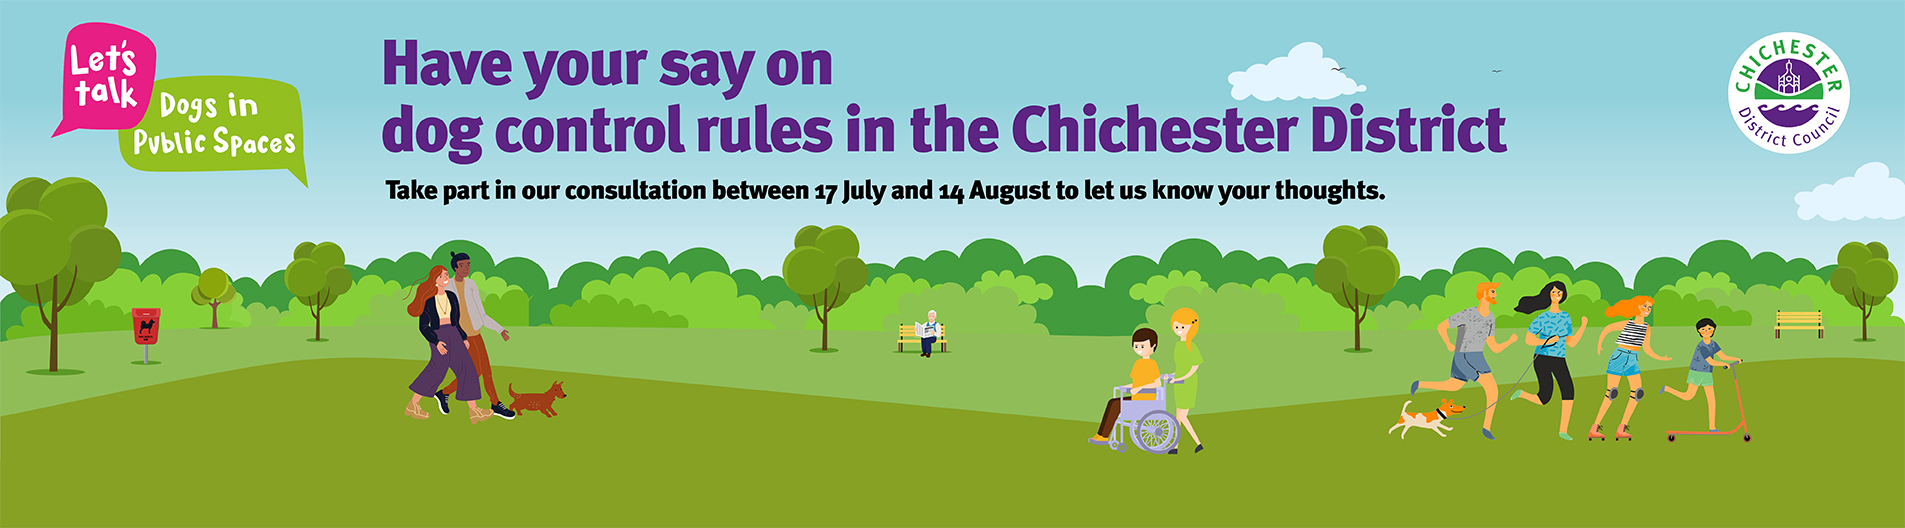 Have your say on dog control rules